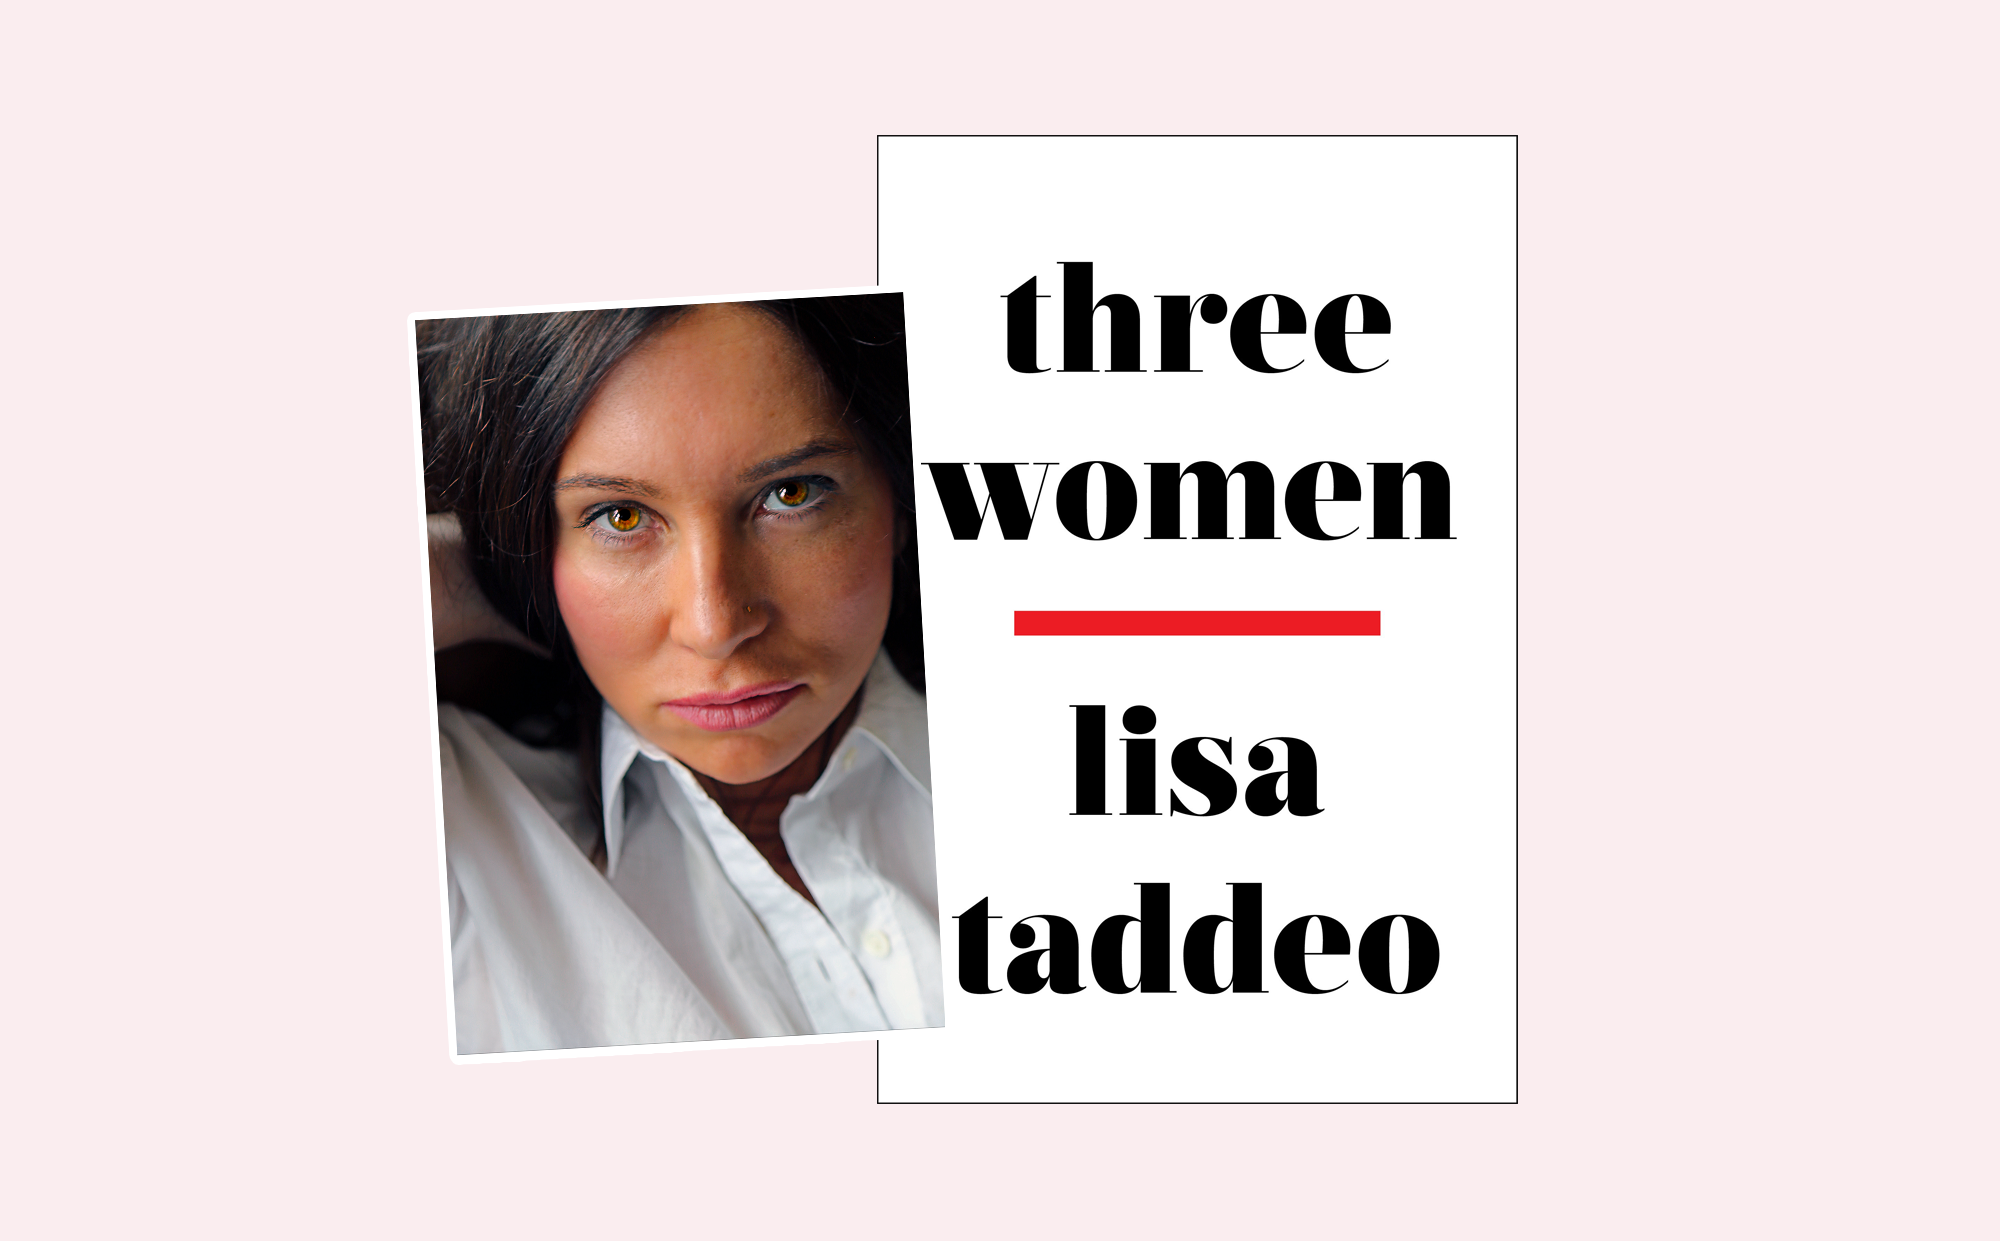 Lisa Taddeo's 'Three Women' Is the Honest Portrayal of Female Desire That 2019 Demands